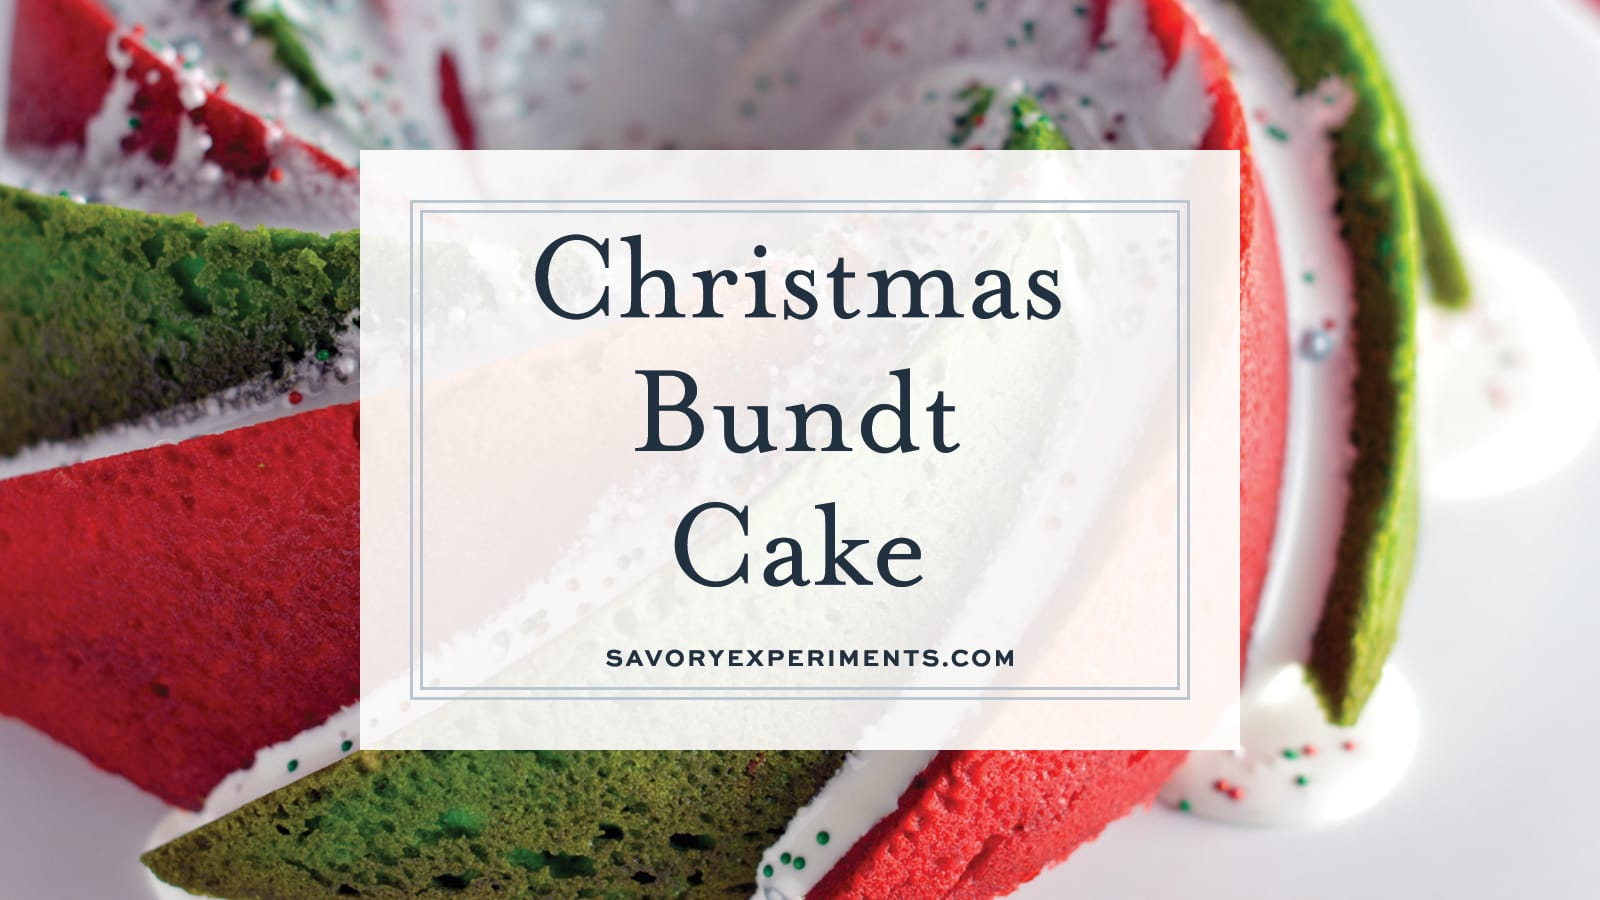 Christmas Bundt Cake | A Festive Red and Green Holiday Cake!